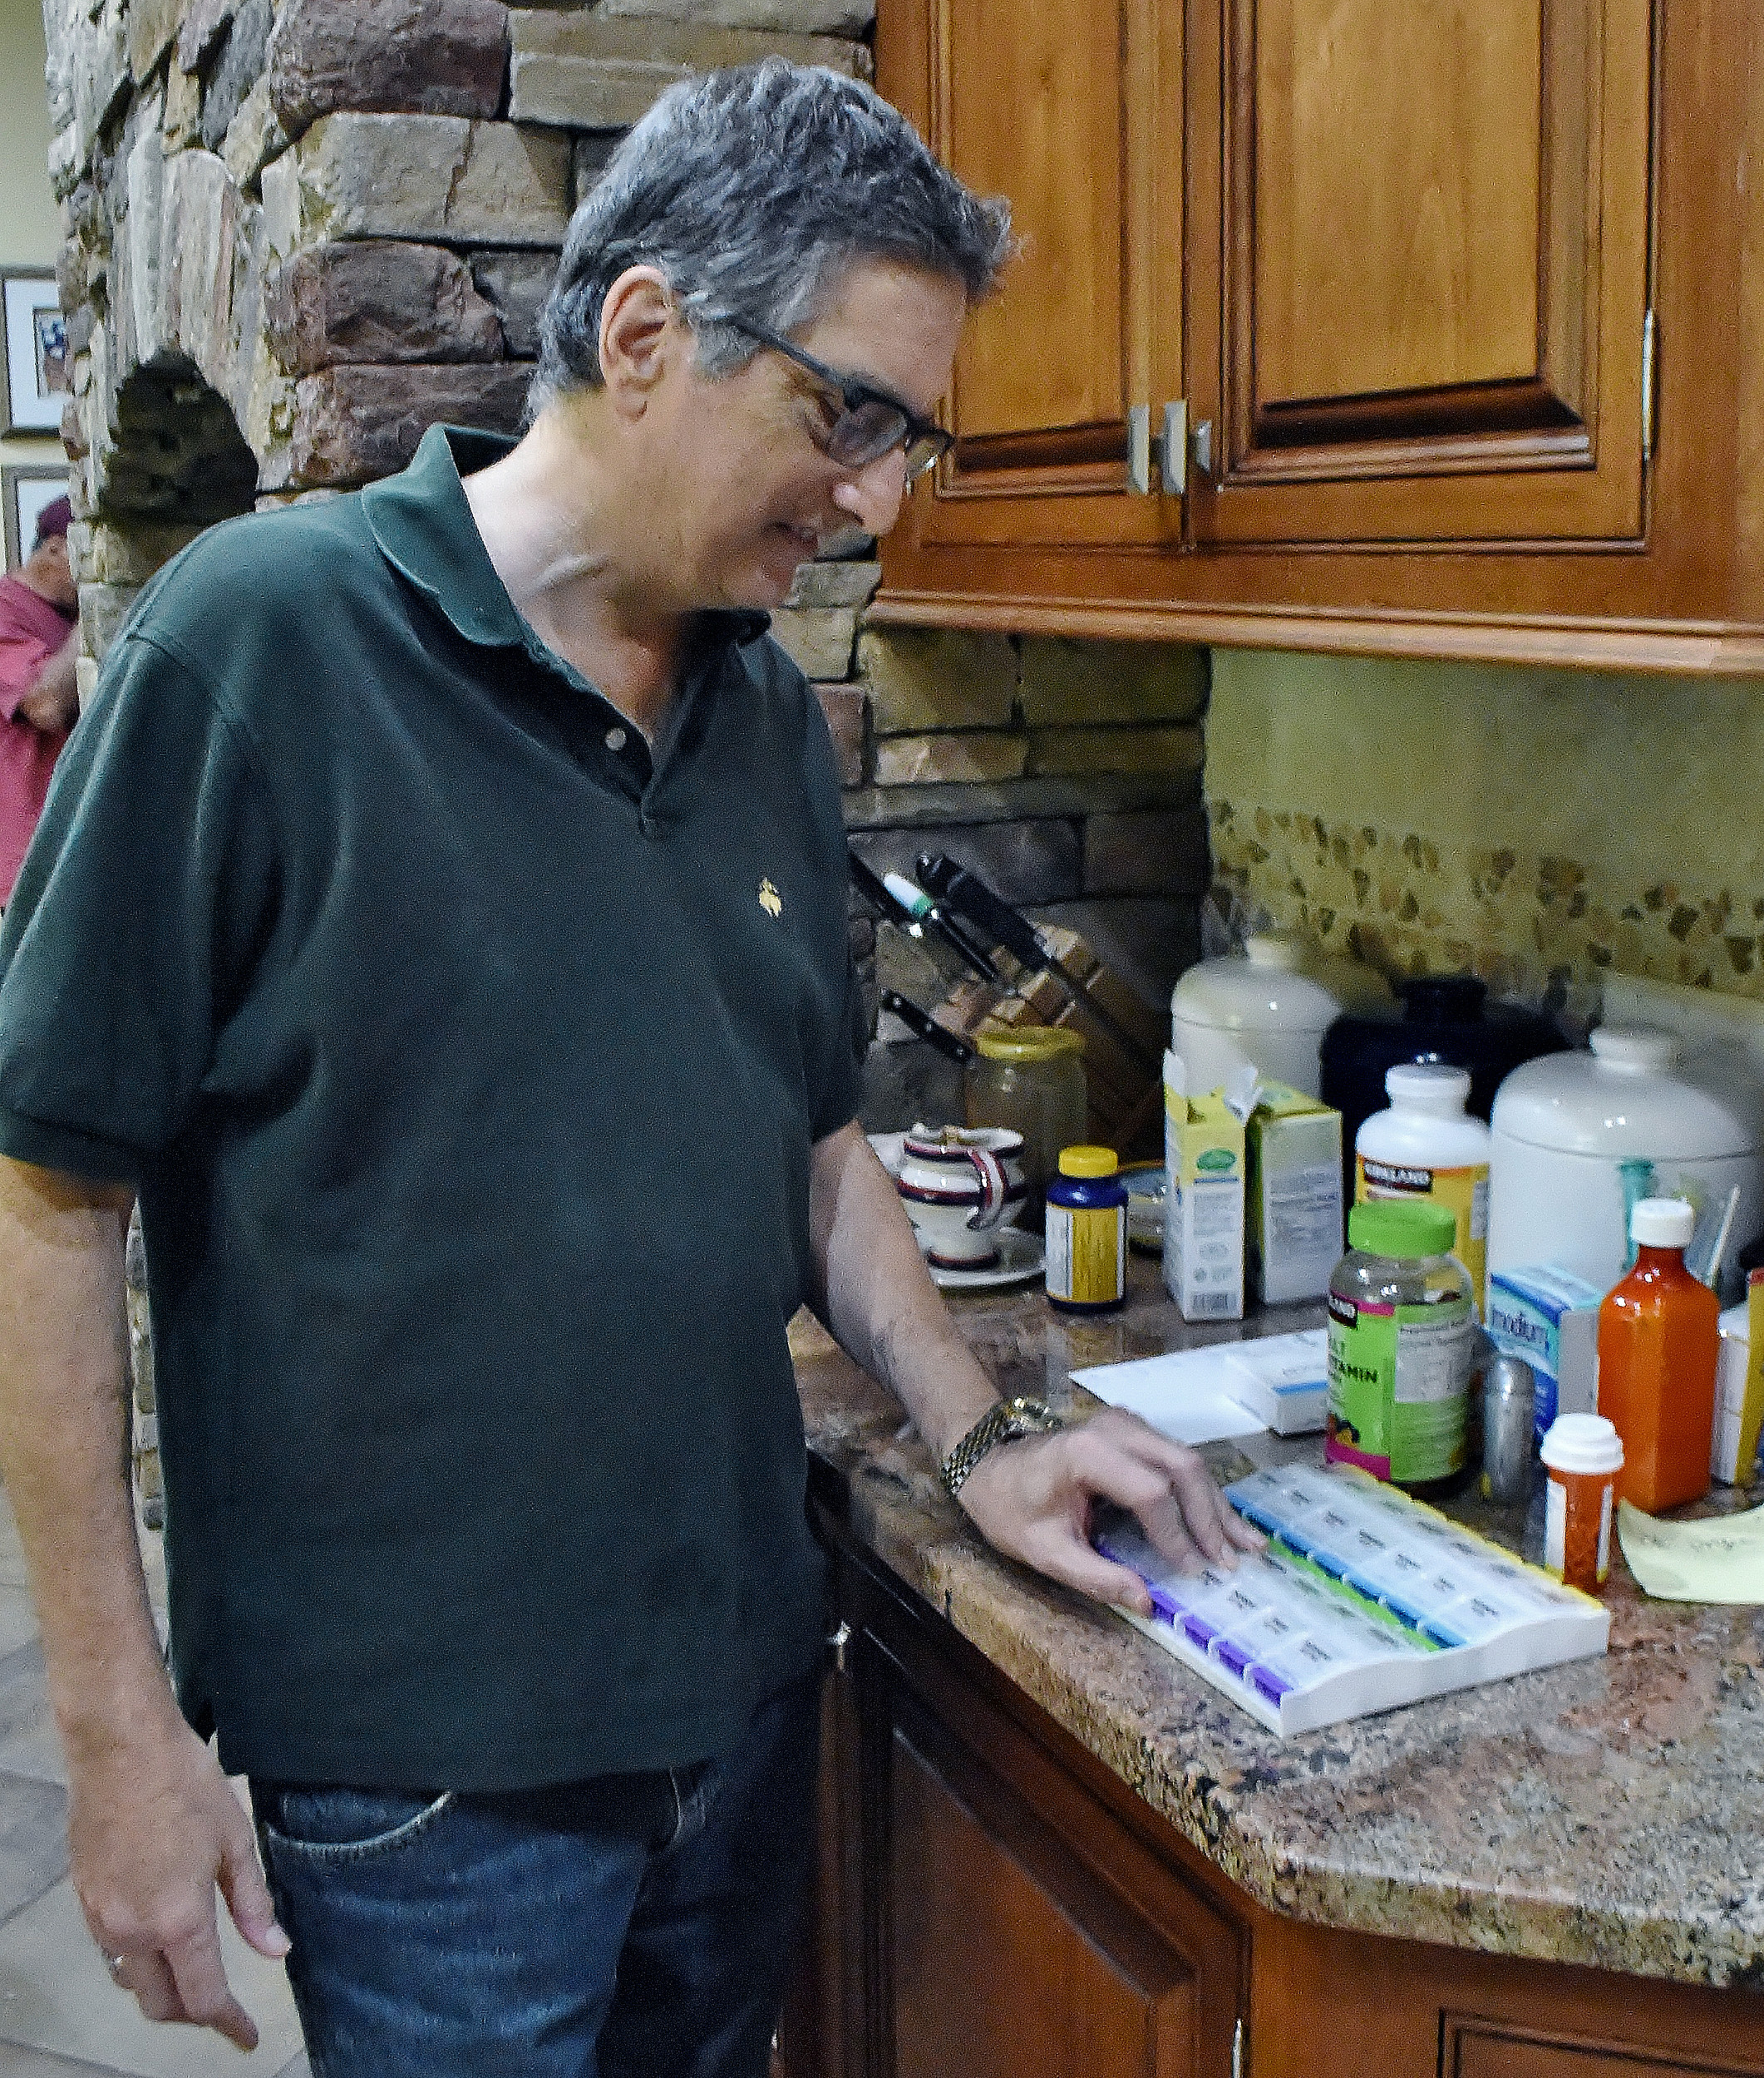 Since receiving his kidney, 58-year-old Stuart Miller is on a strict regimen of medications.